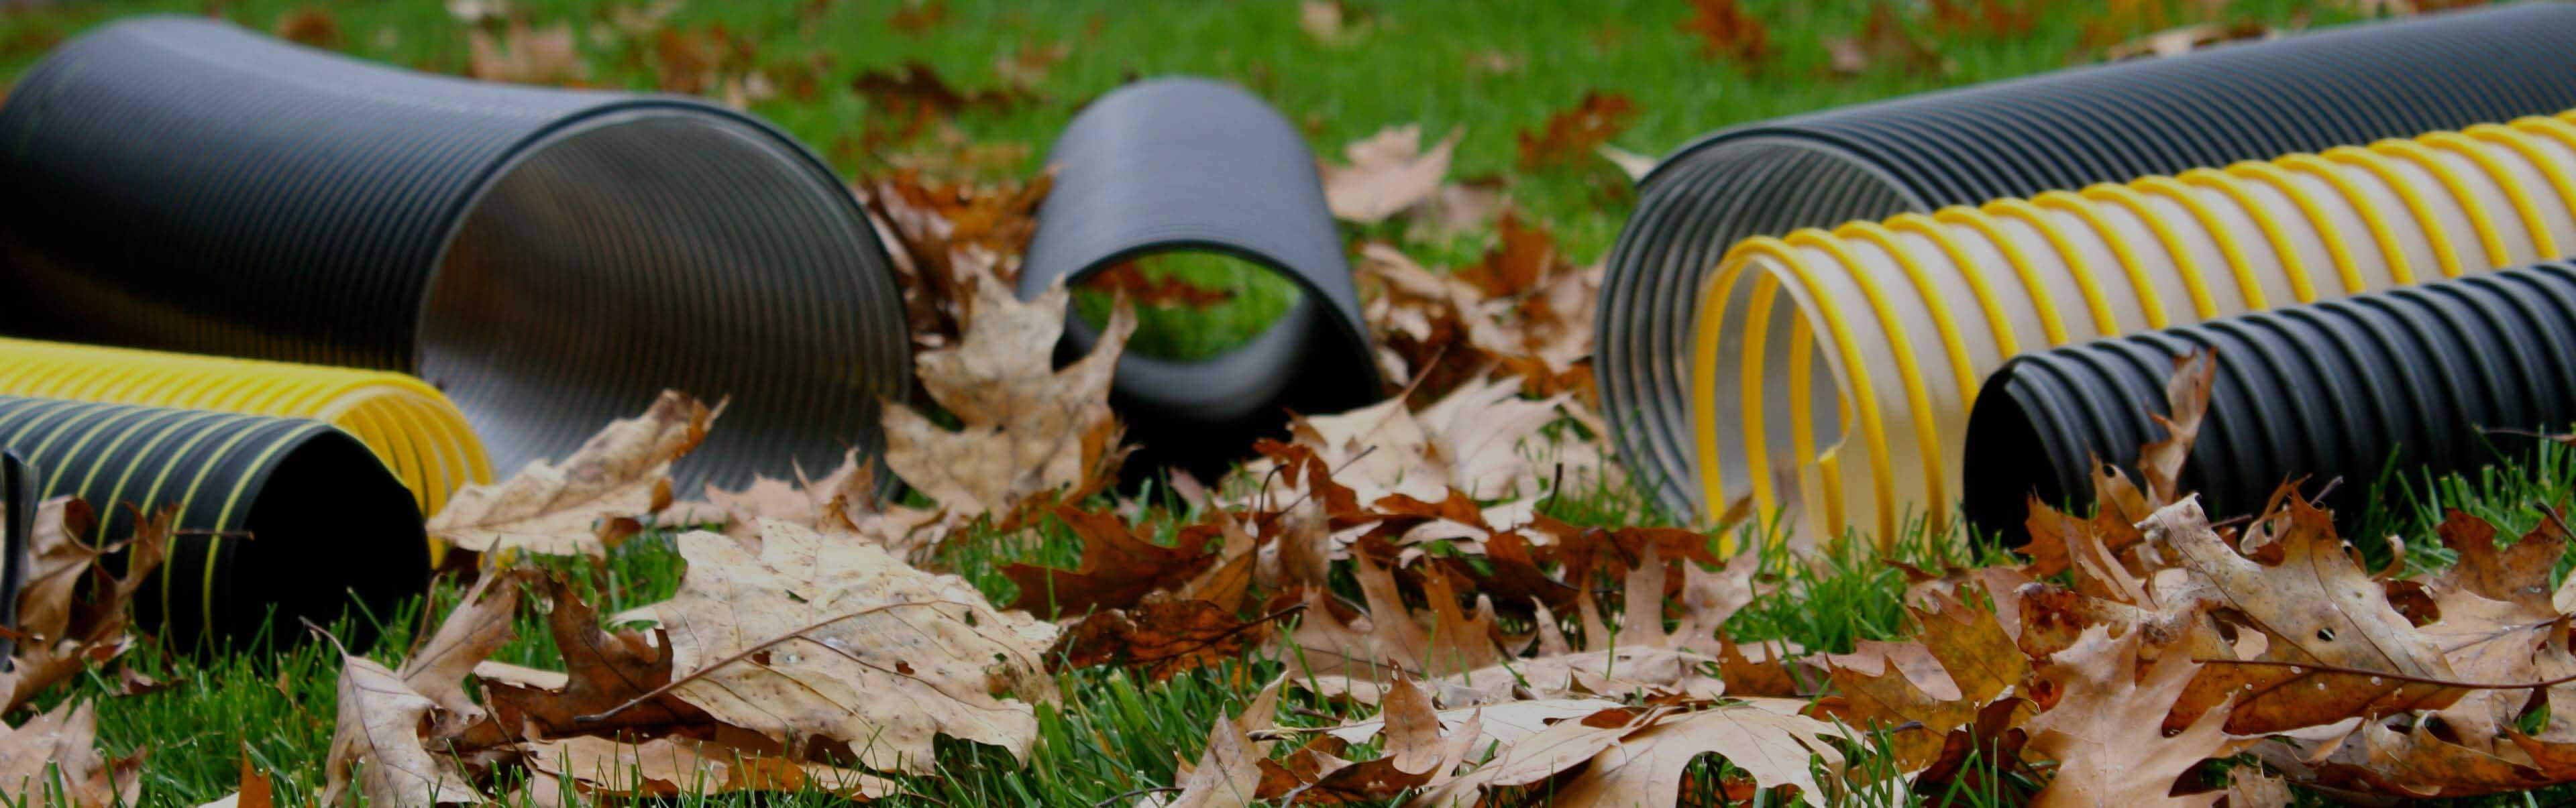 photo of leaf vacuum hose with leaves